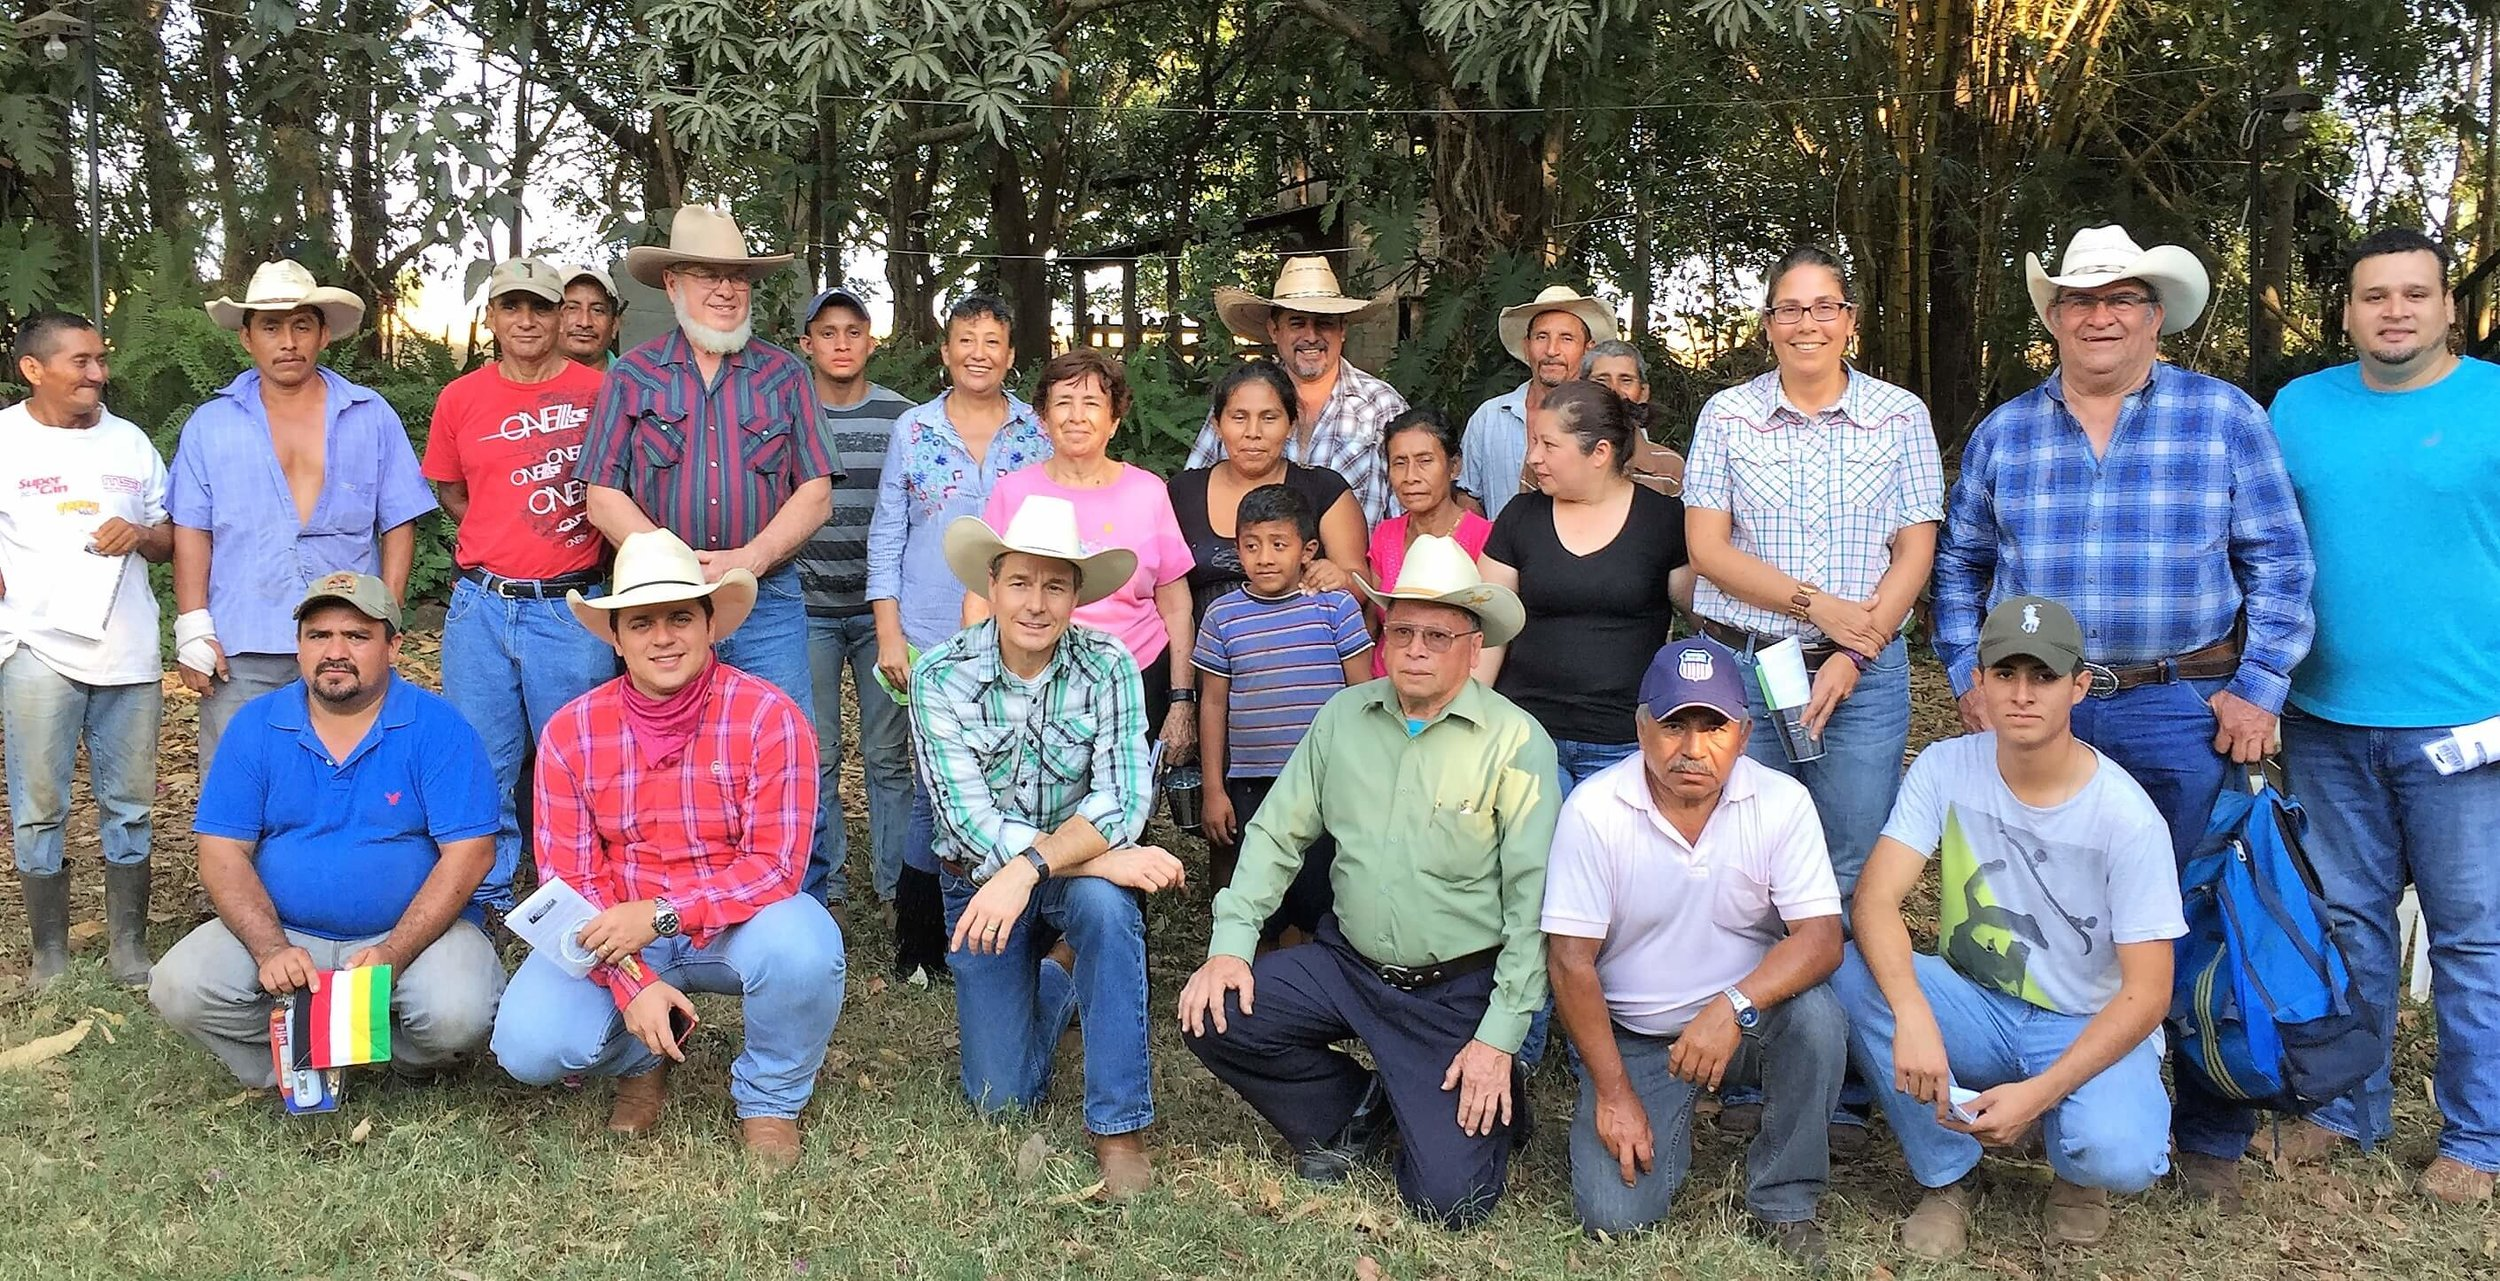 A New PSE Christian Rancher Group Formed! Ranchers and Friends of Coca Melgar